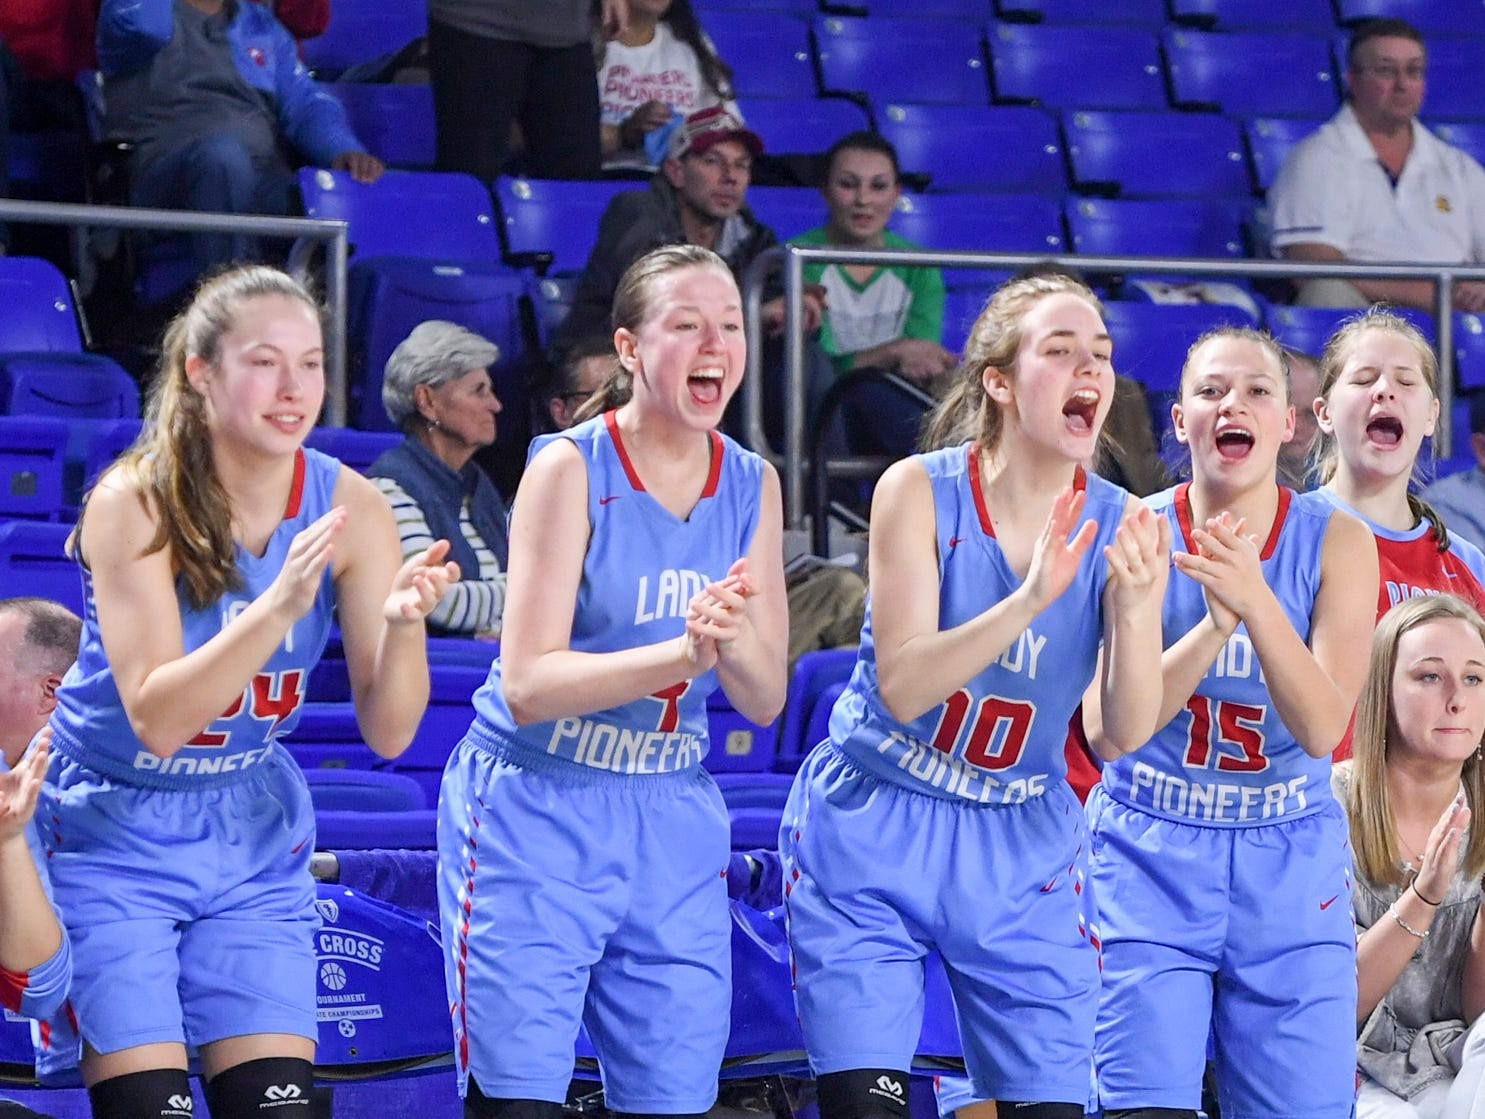 Gibson County's Madison Hart (24), Annie Bass (4), Kaci Sweatt (10) and Jaci White (15) cheer on their team during their Class A semifinal game against Midway, Friday, March 8, 2019, in  Murfreesboro. Gibson County defeated Midway, 75-61.